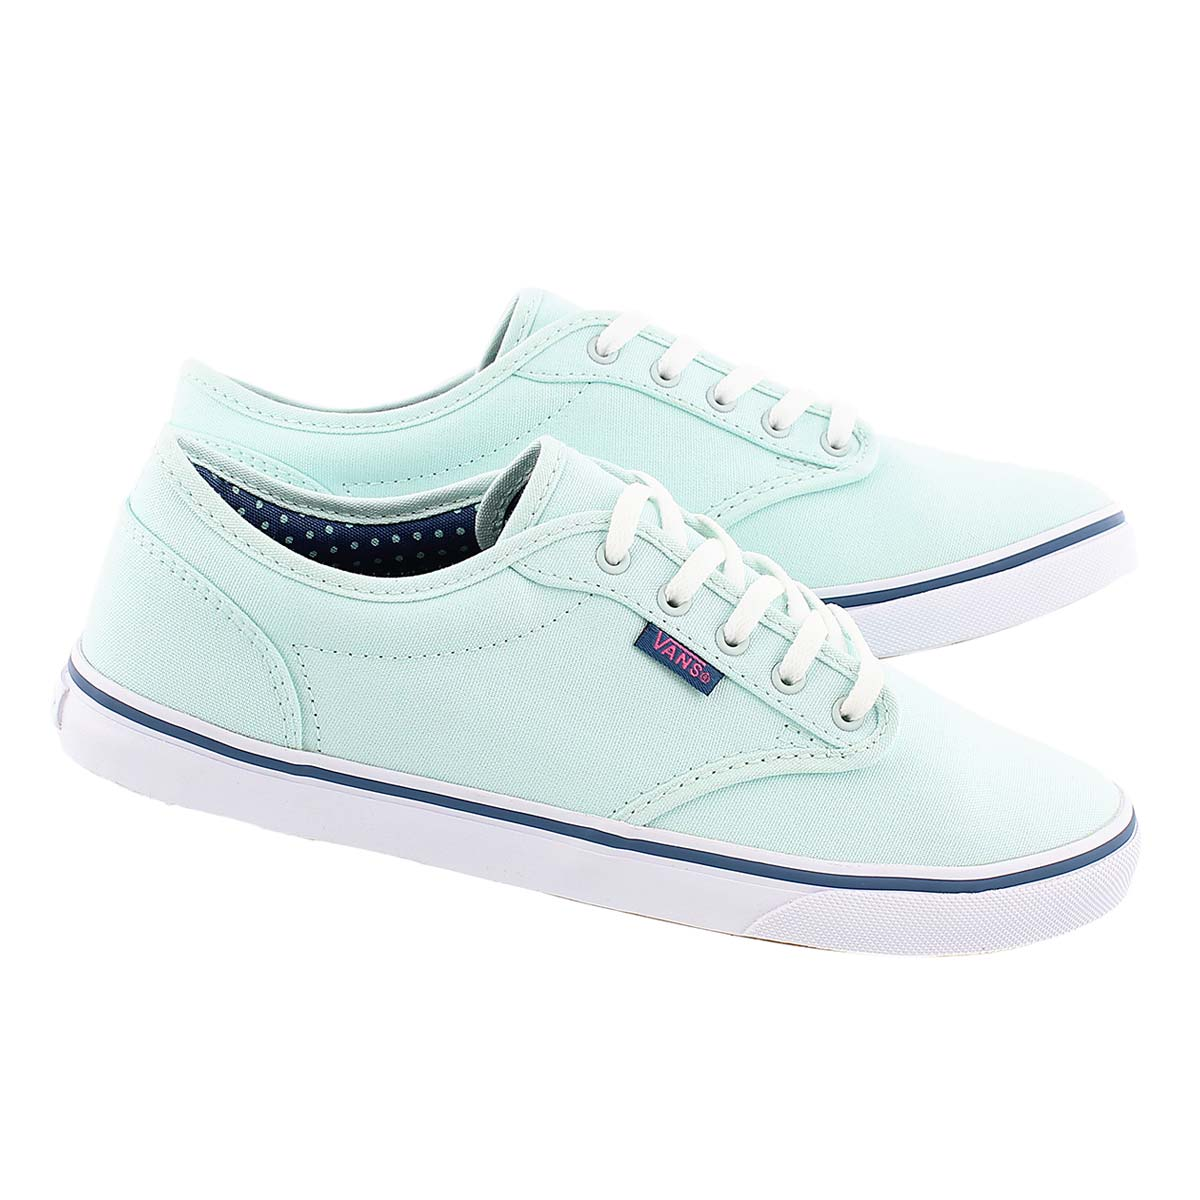 Lds Atwood Low sea green lace up sneaker